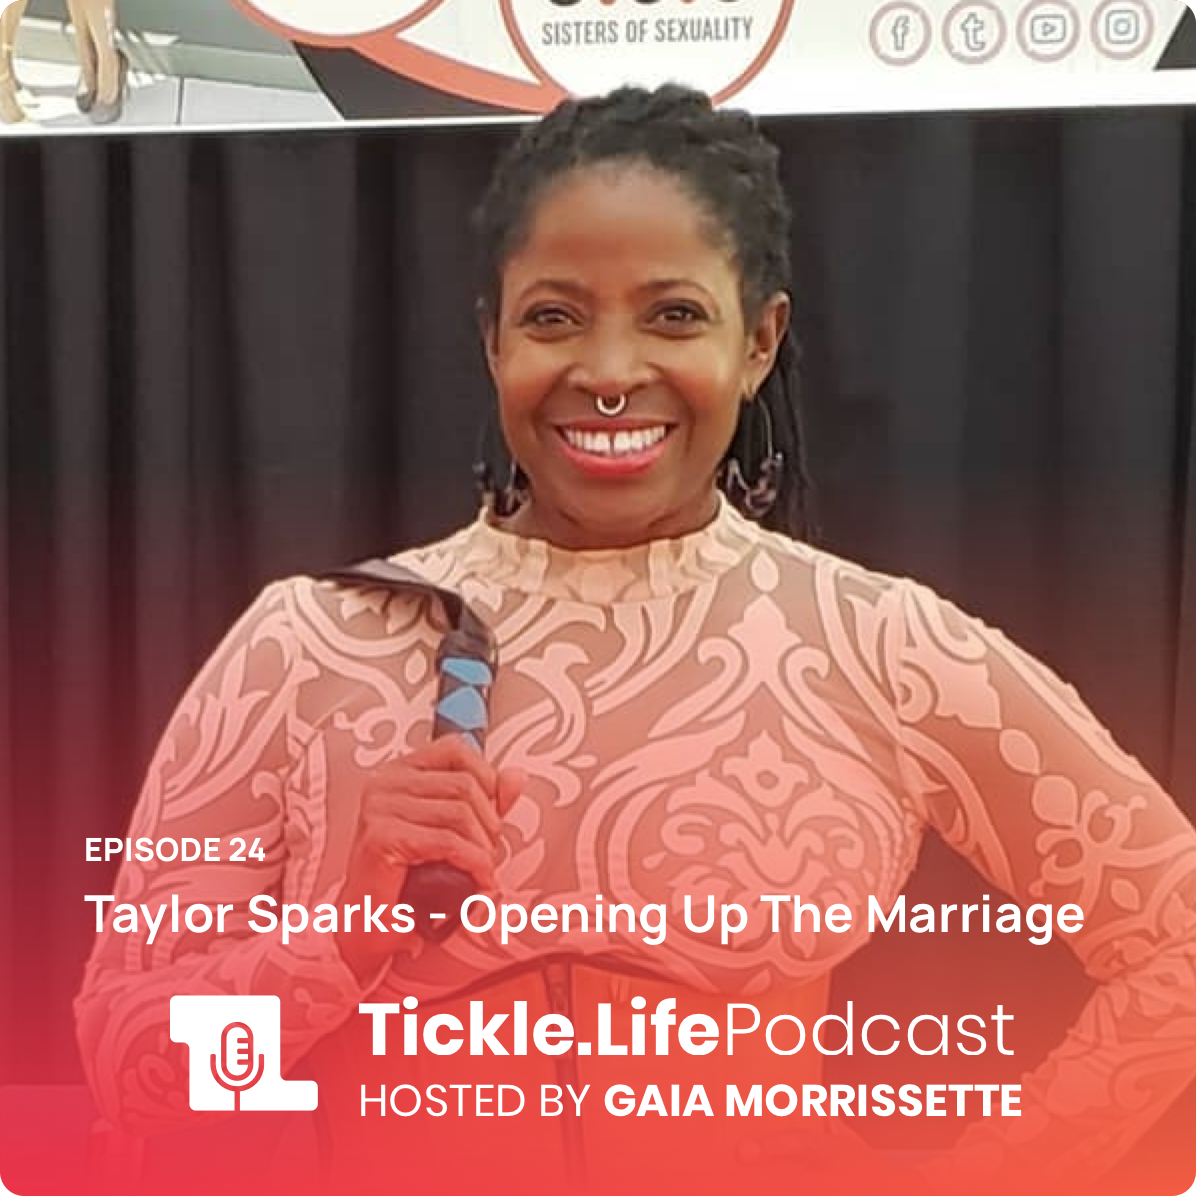 - Taylor Sparks - Opening Up The Marriage